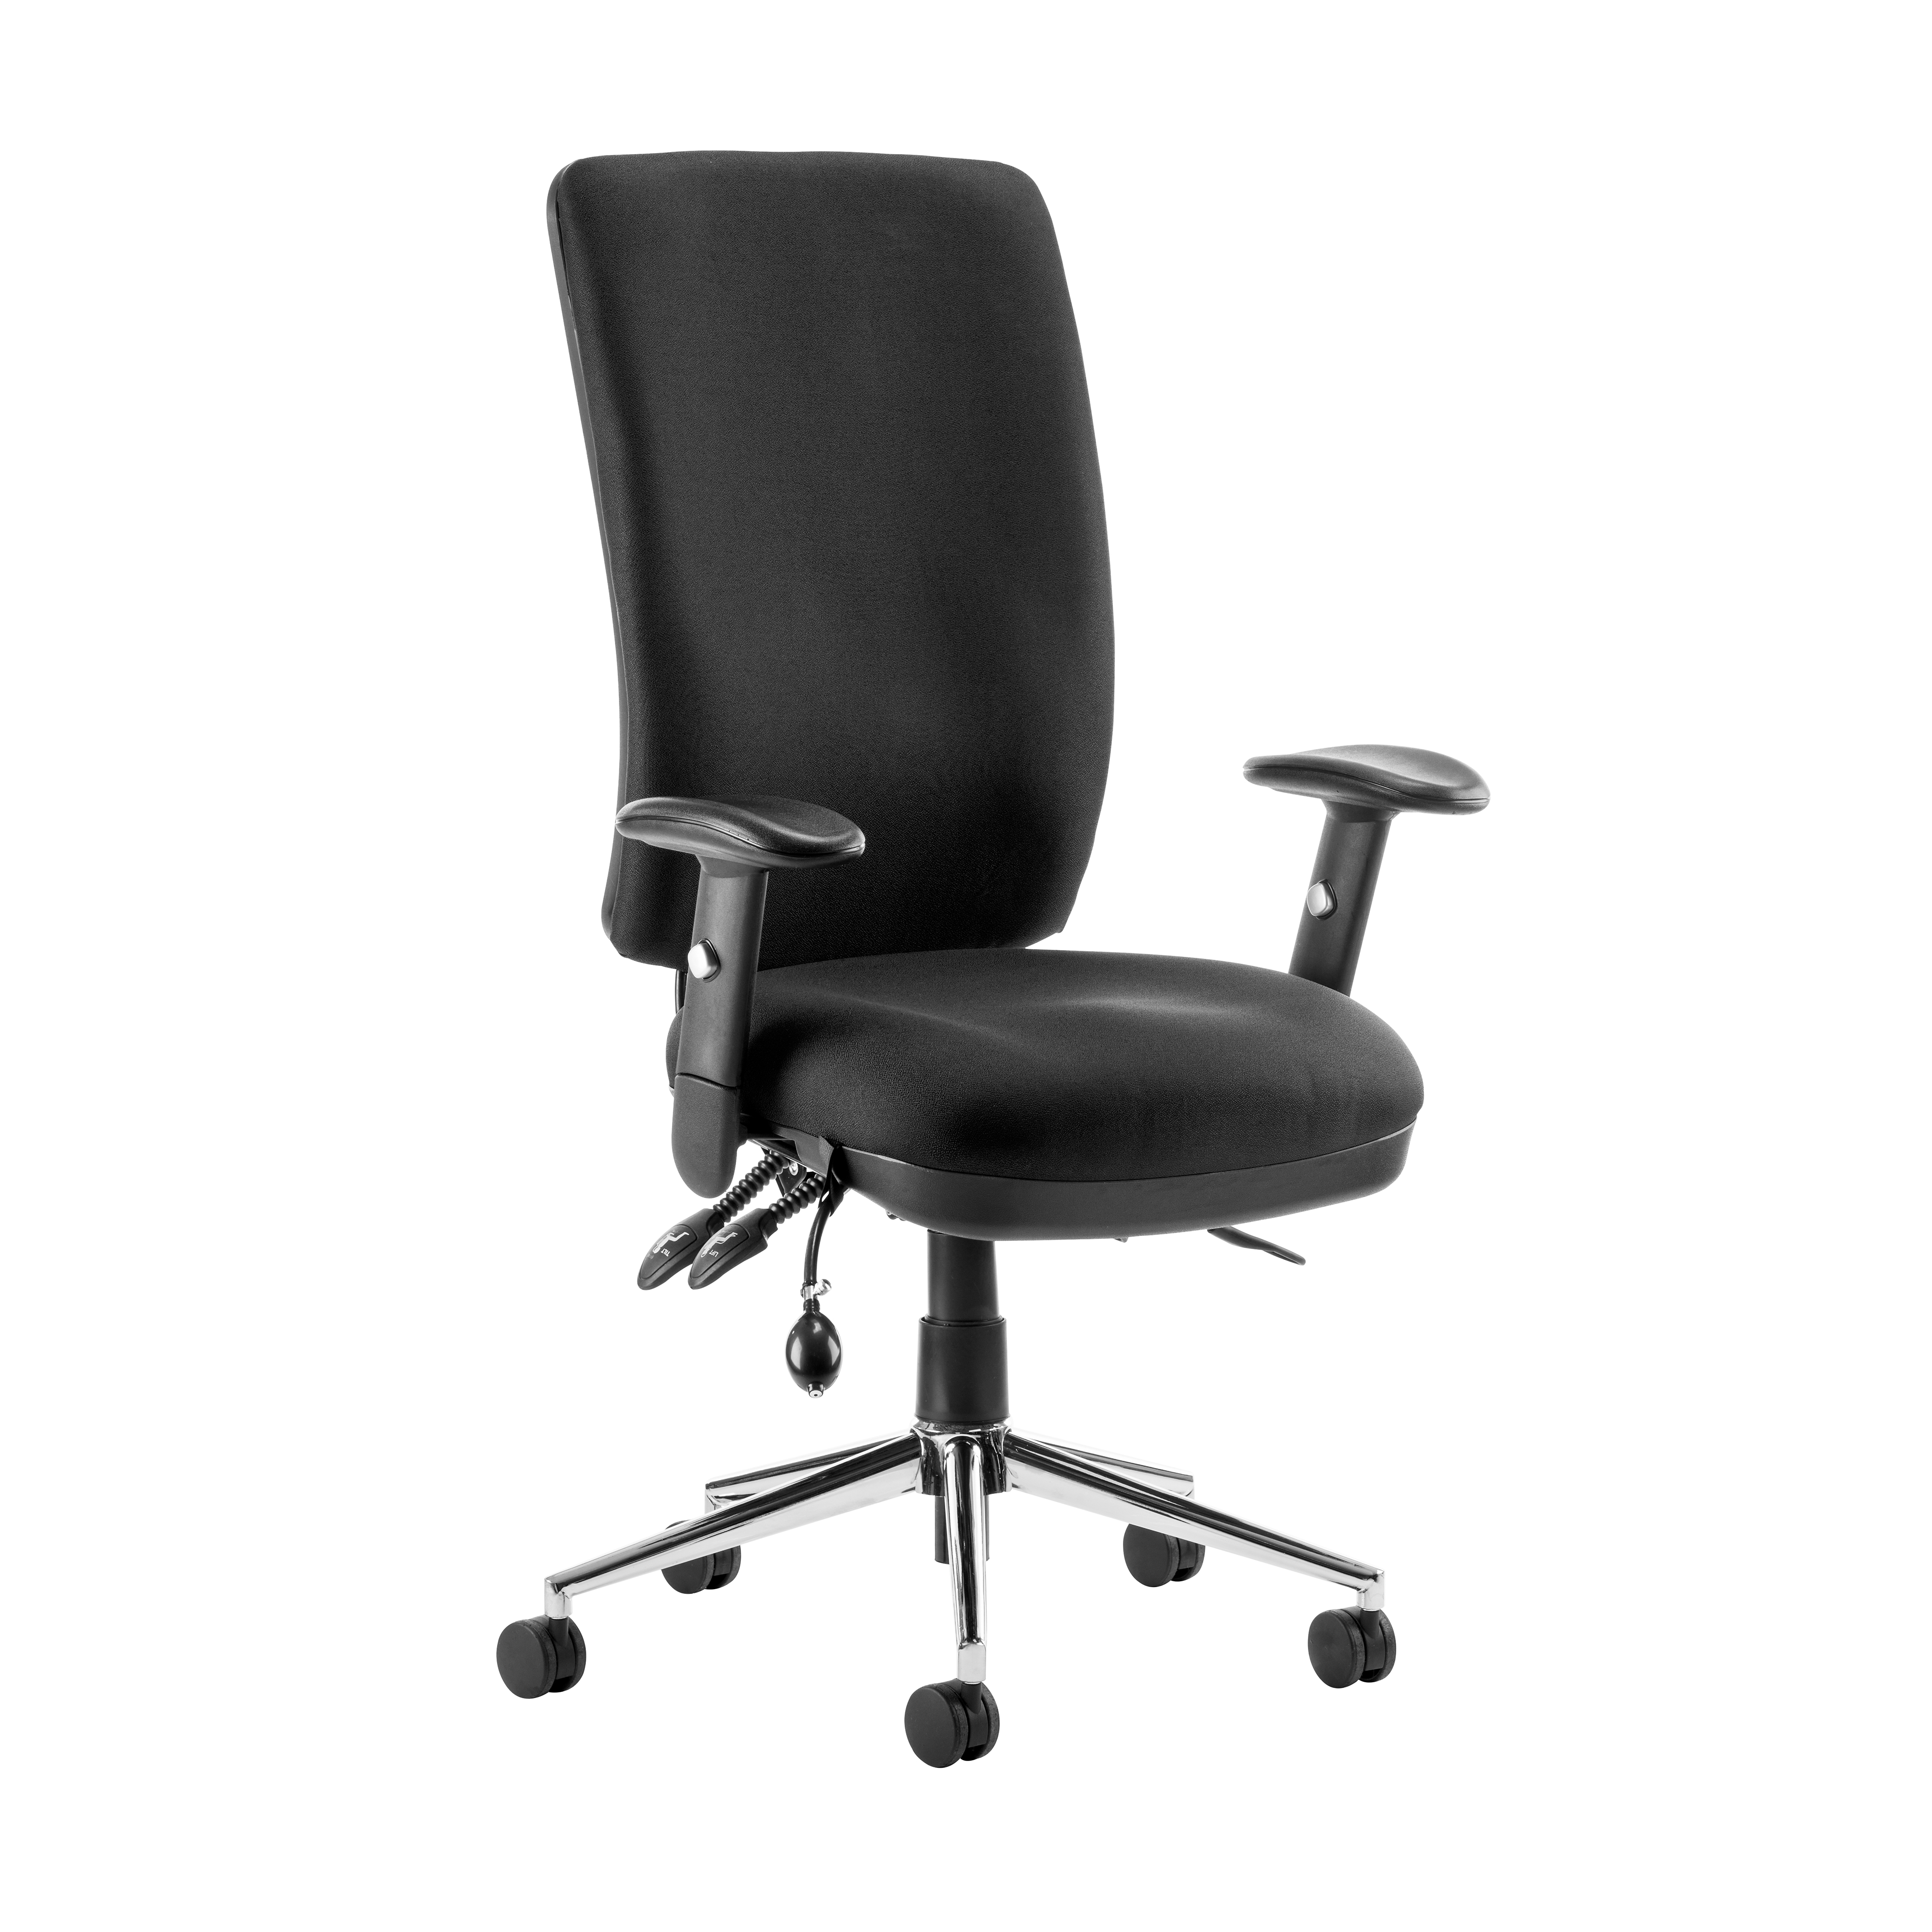 Task seating Sonix Support Chiro High Back Chair Black 510x480-540x500-600mm Ref OP000006